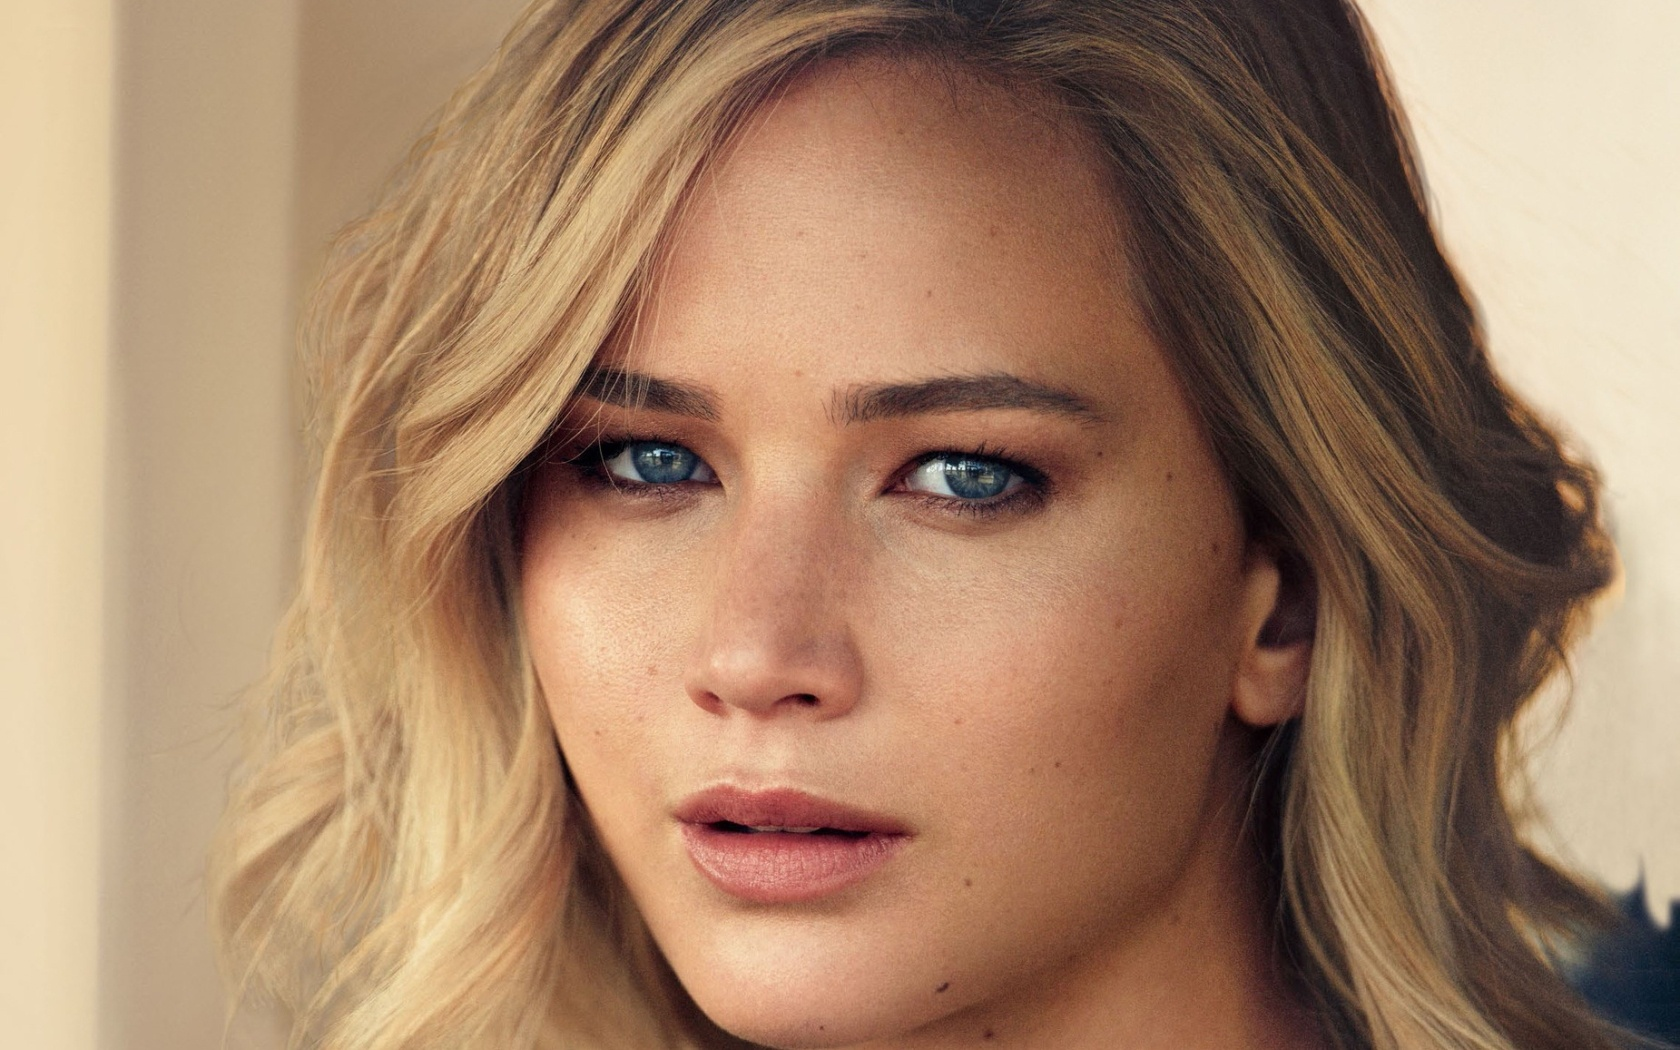 jennifer lawrence vogue 2015 wallpapers 1680x1050 525529